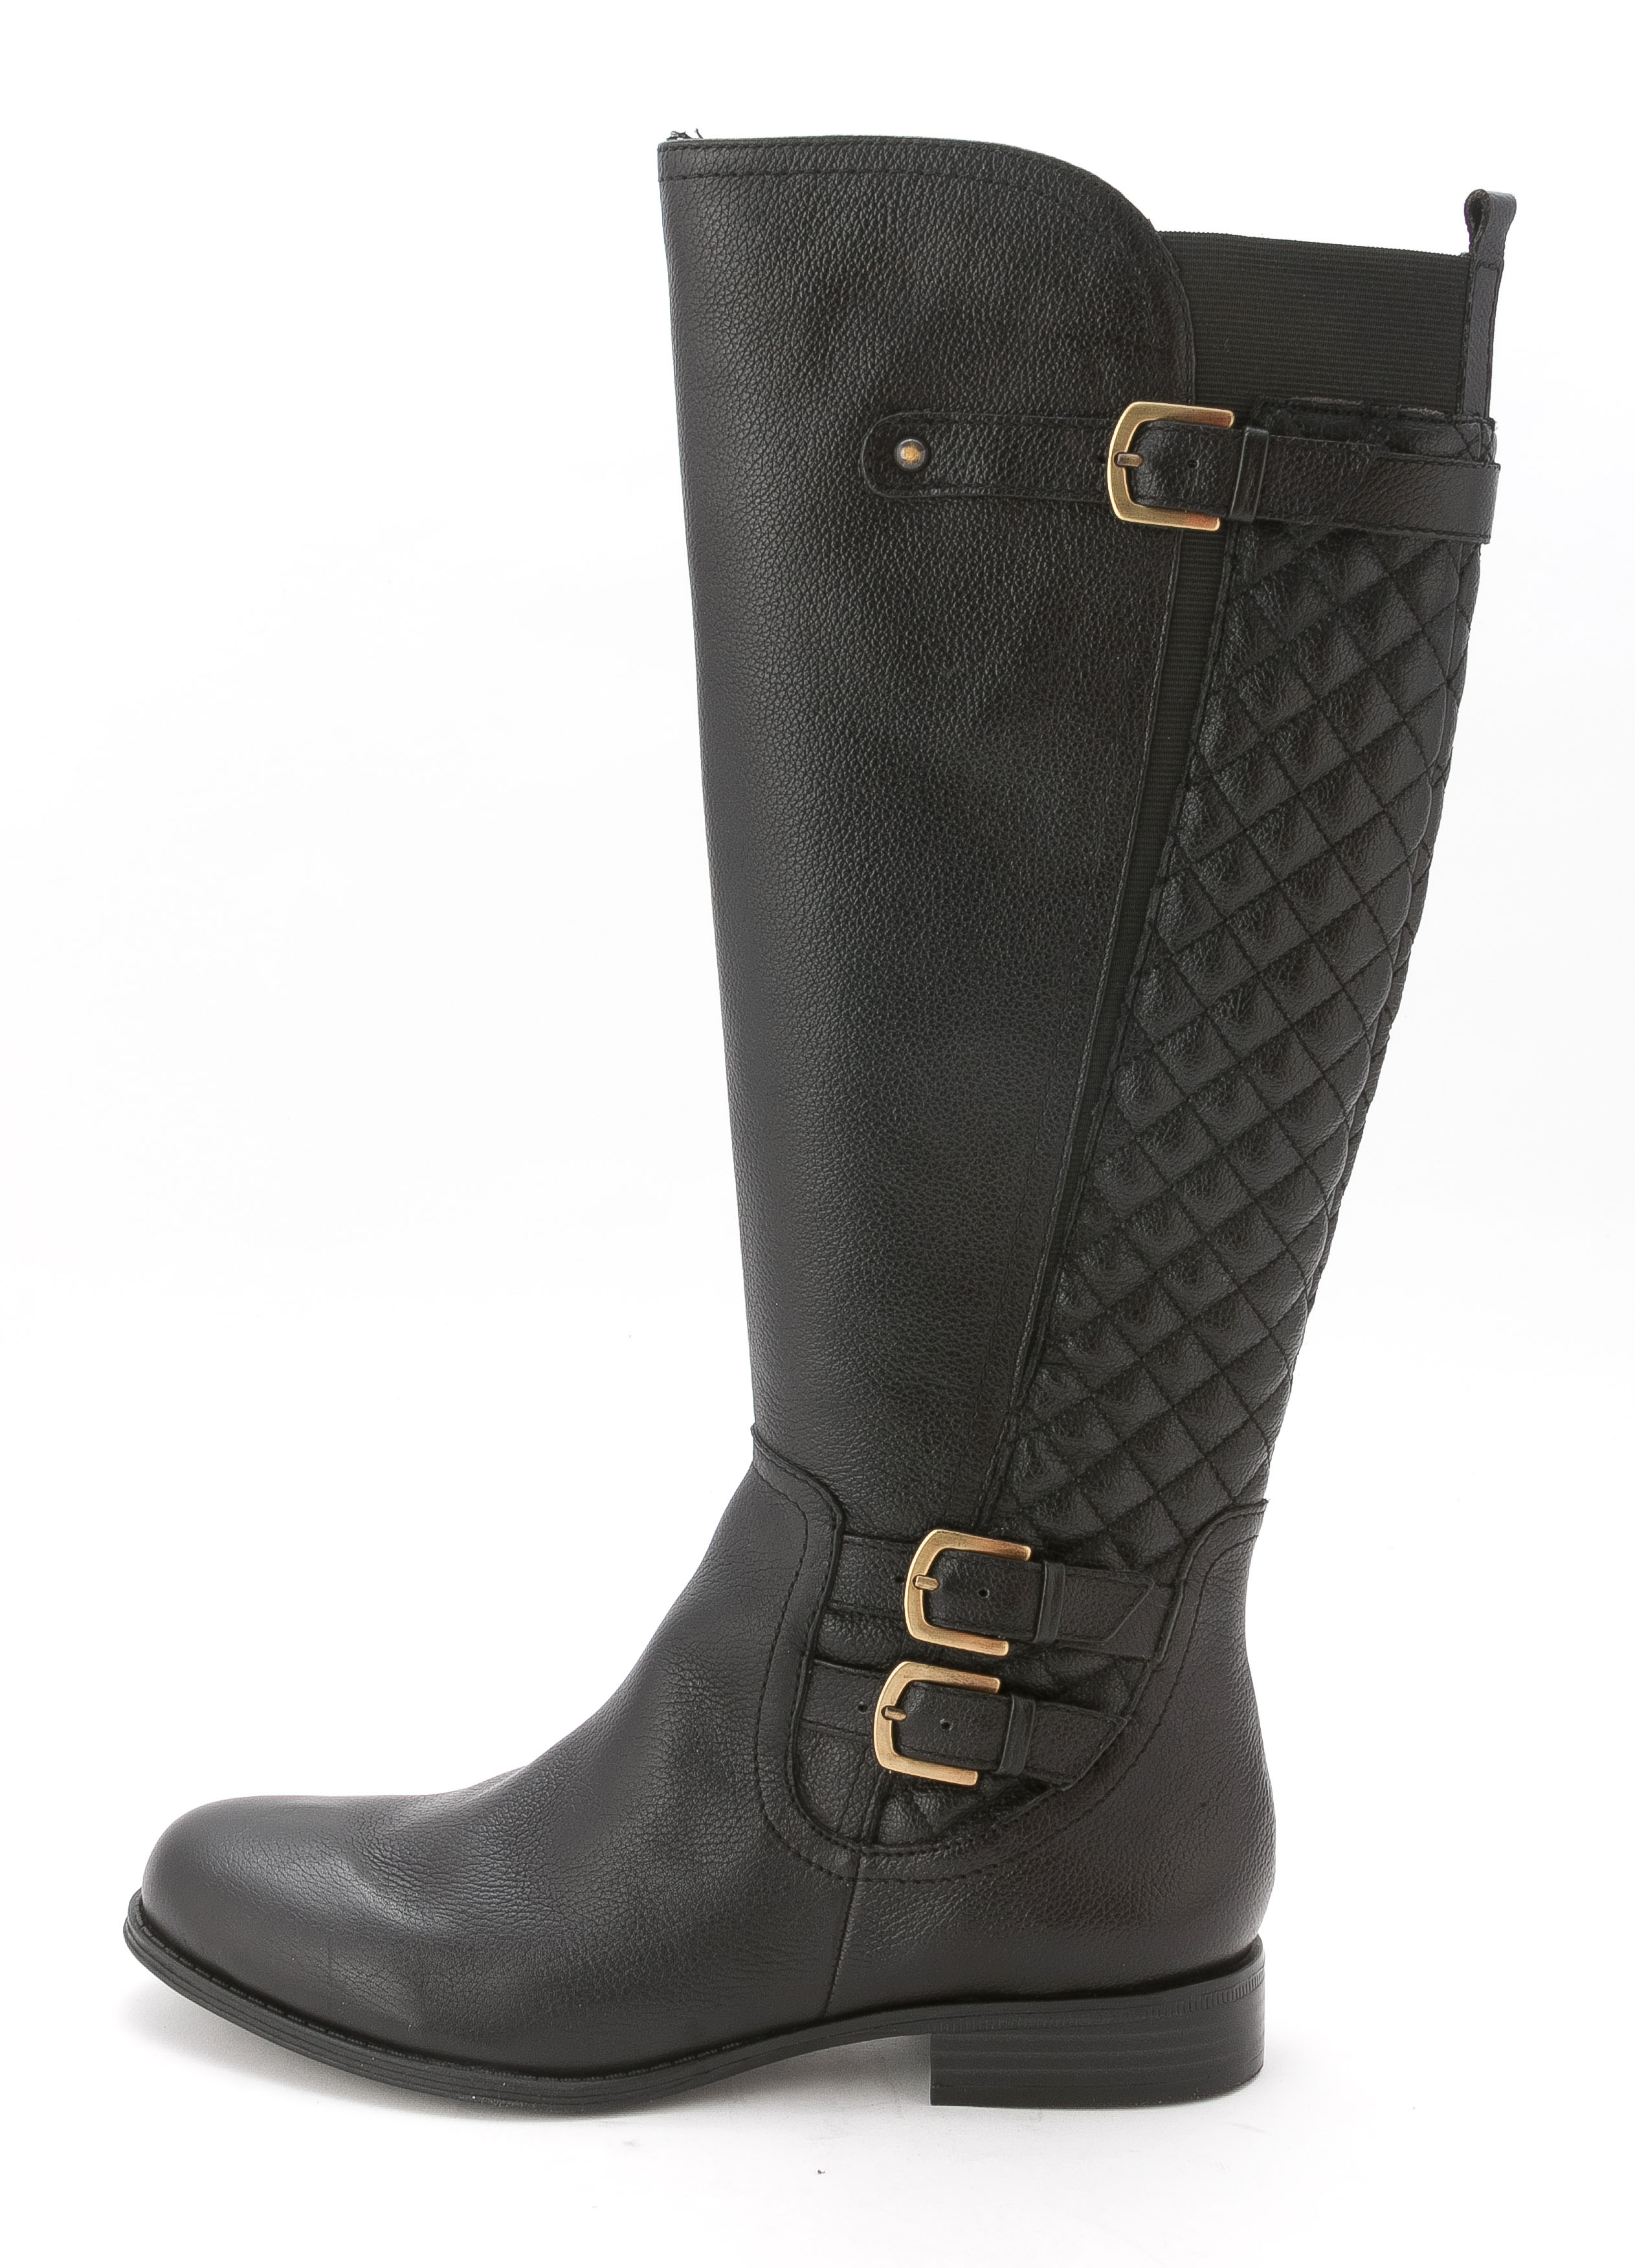 Naturalizer Women's Jamon Round Toe Leather Knee High Boot by Naturalizer